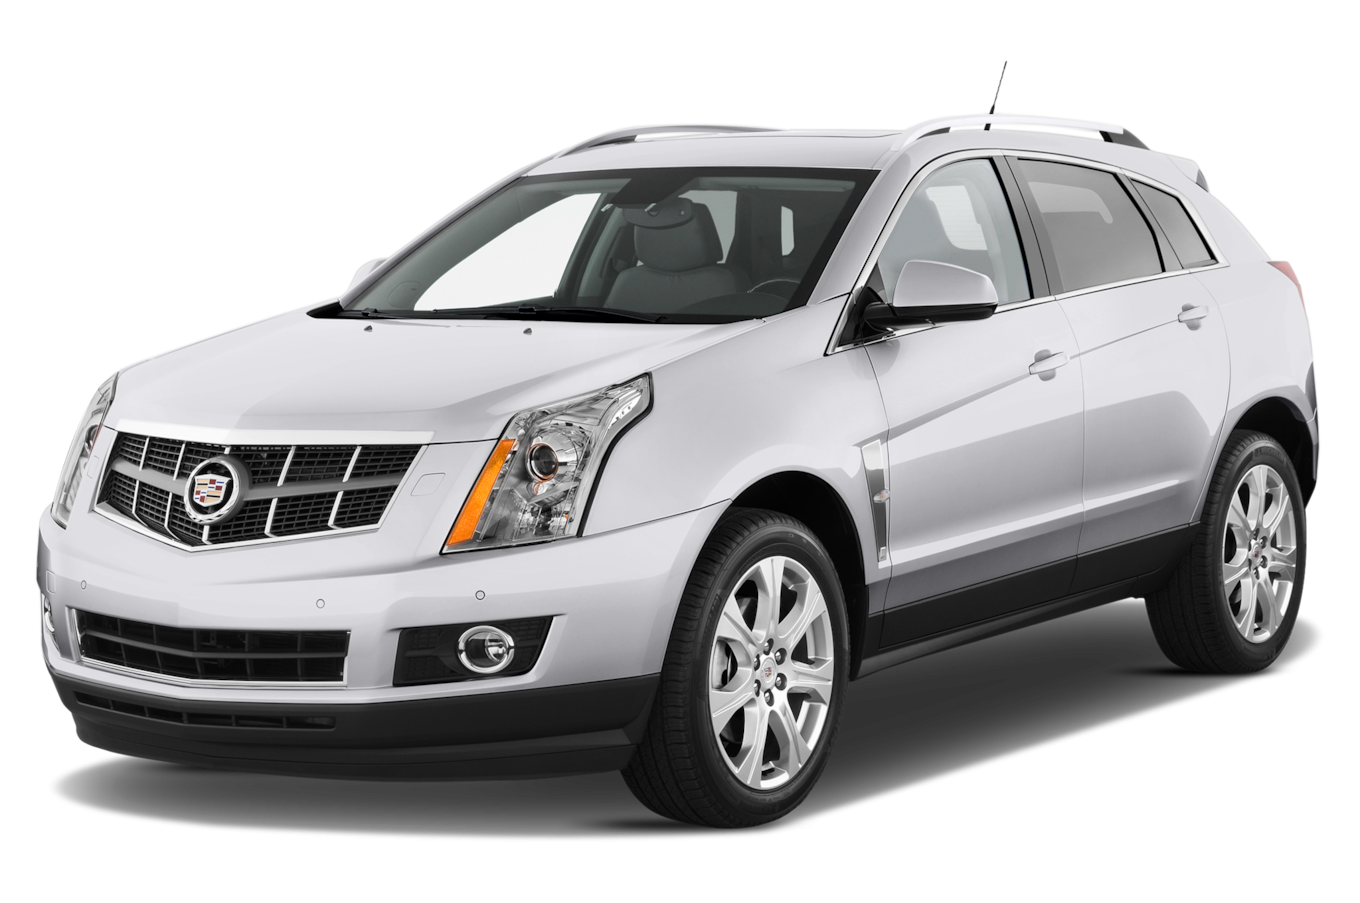 2011 Cadillac SRX Reviews Research SRX Prices Specs